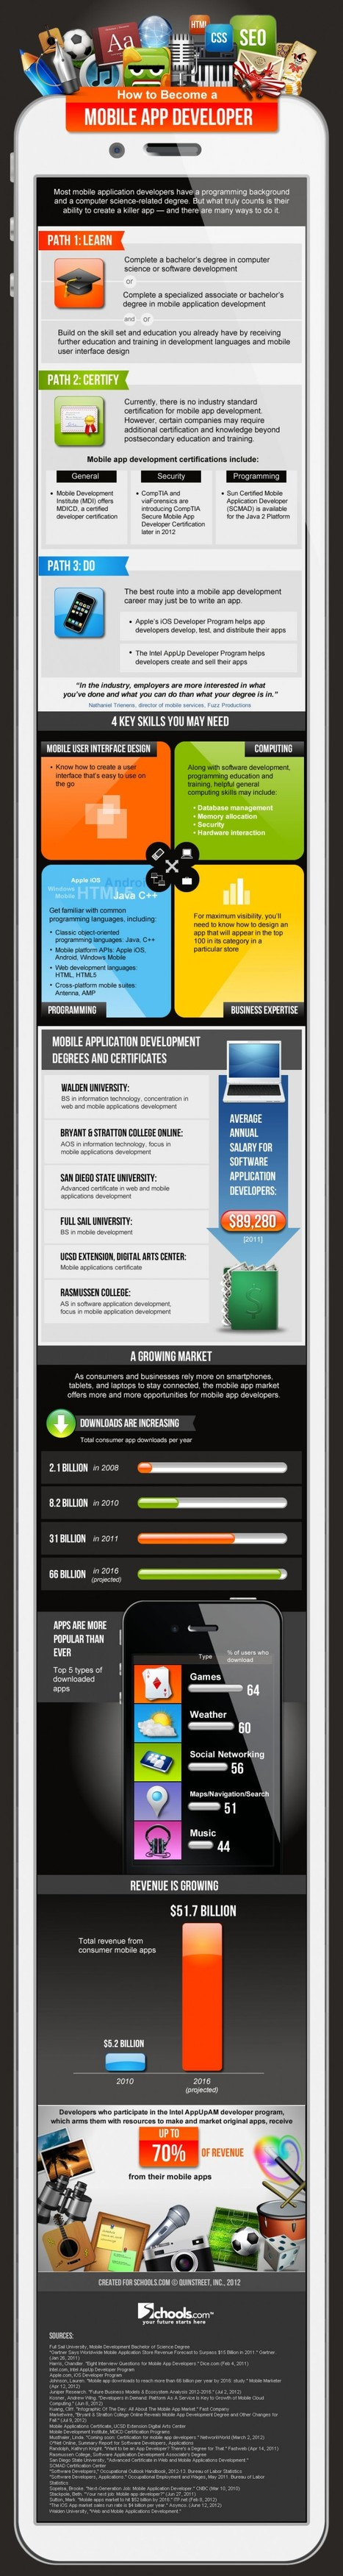 How To Start Developing Your Own Apps | inspiring | Scoop.it